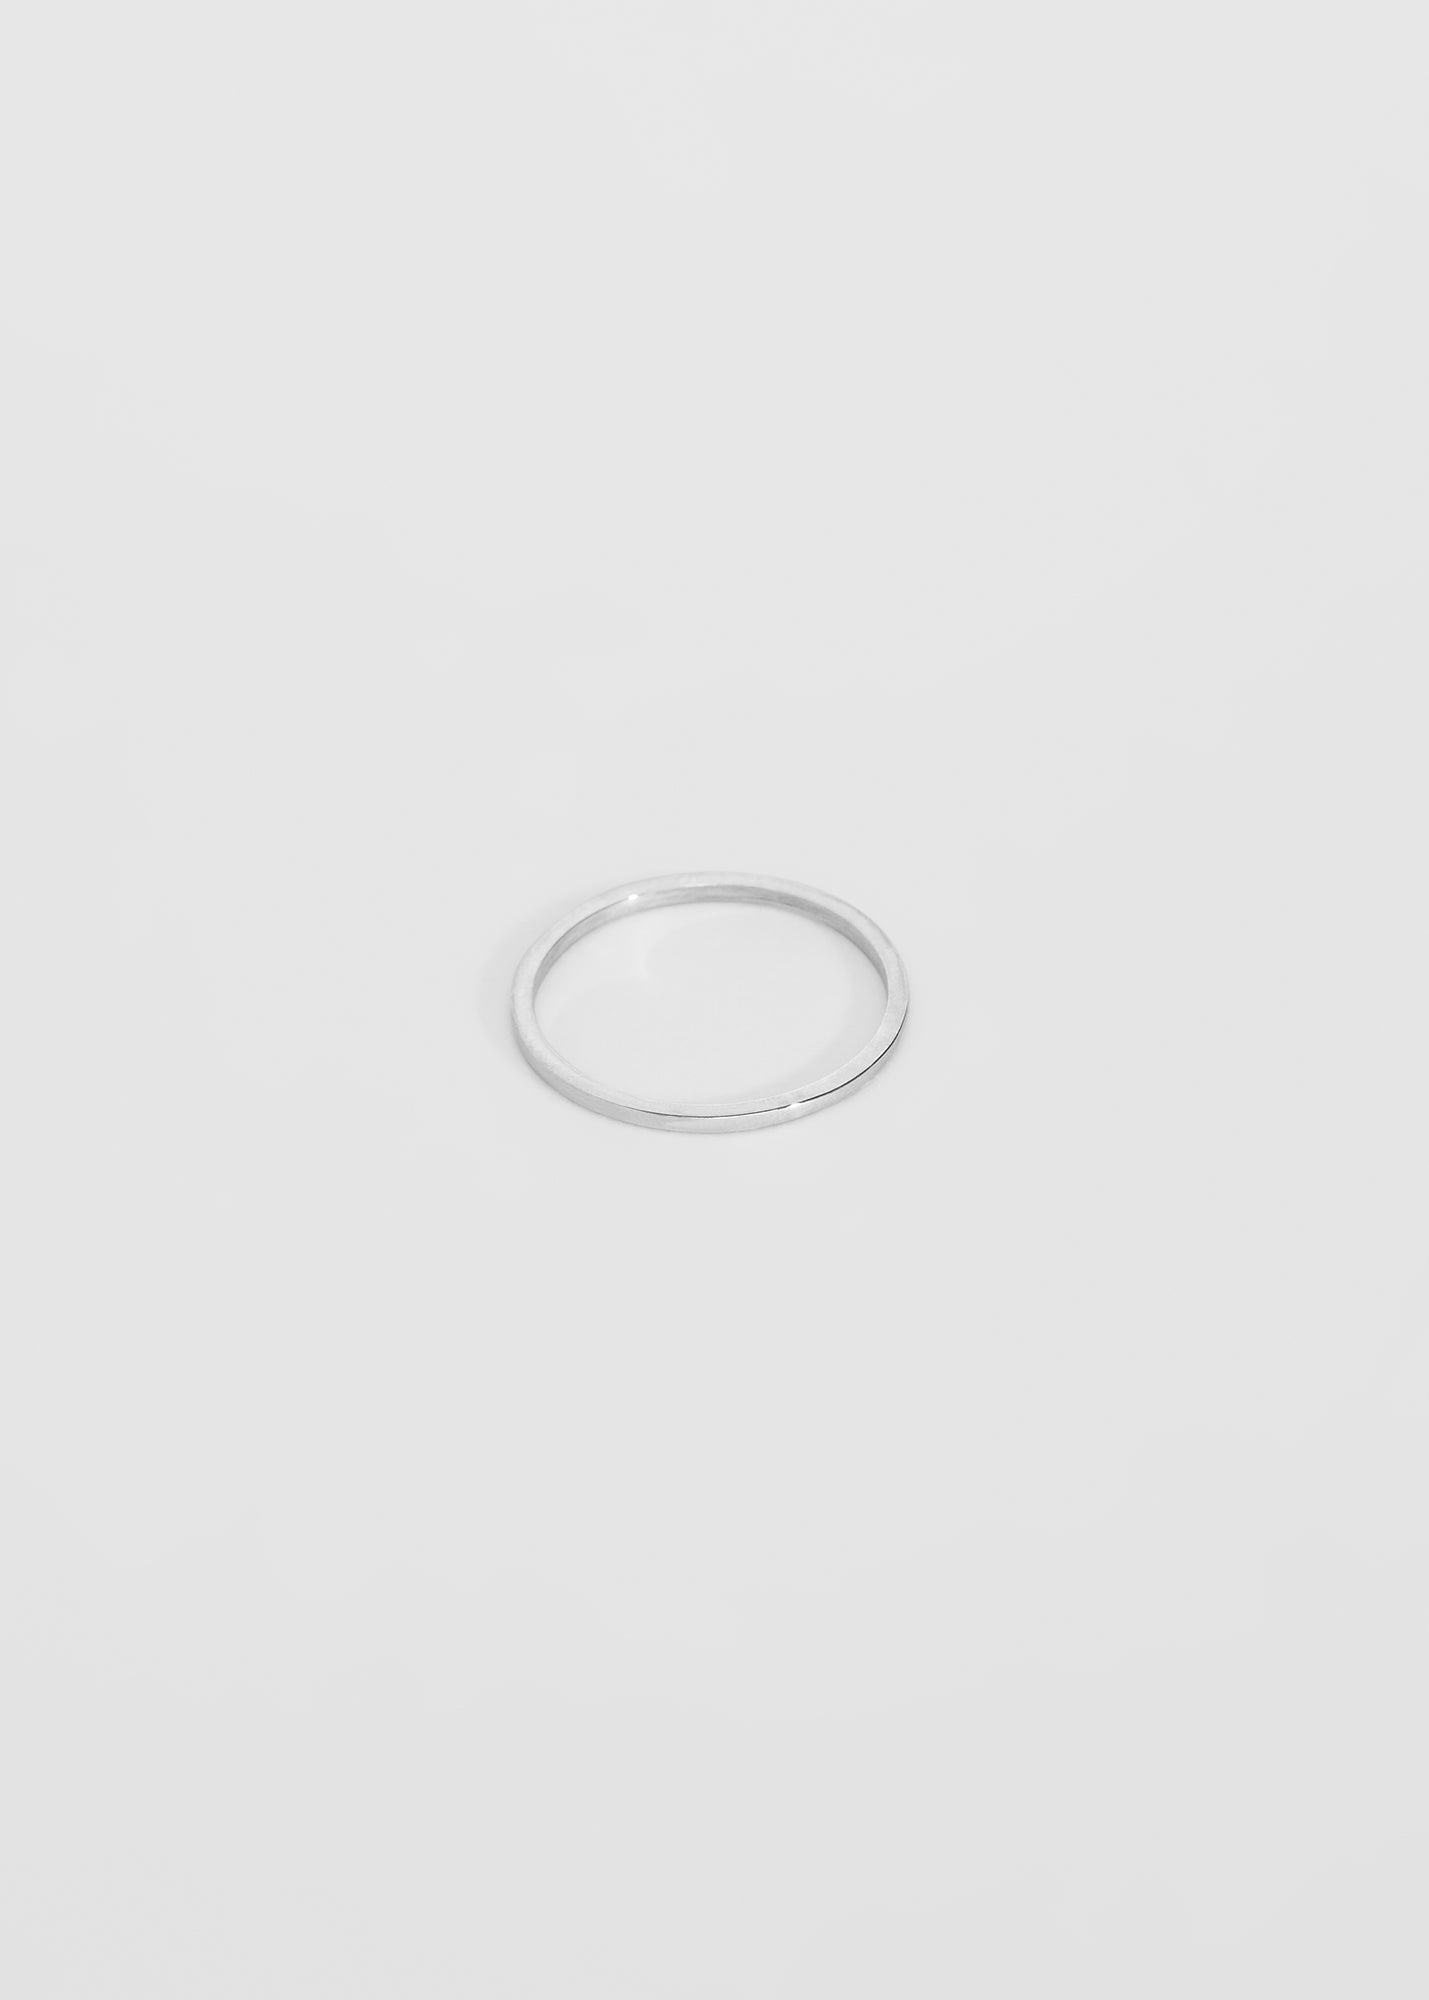 Thin Plain - Trine Tuxen Jewelry